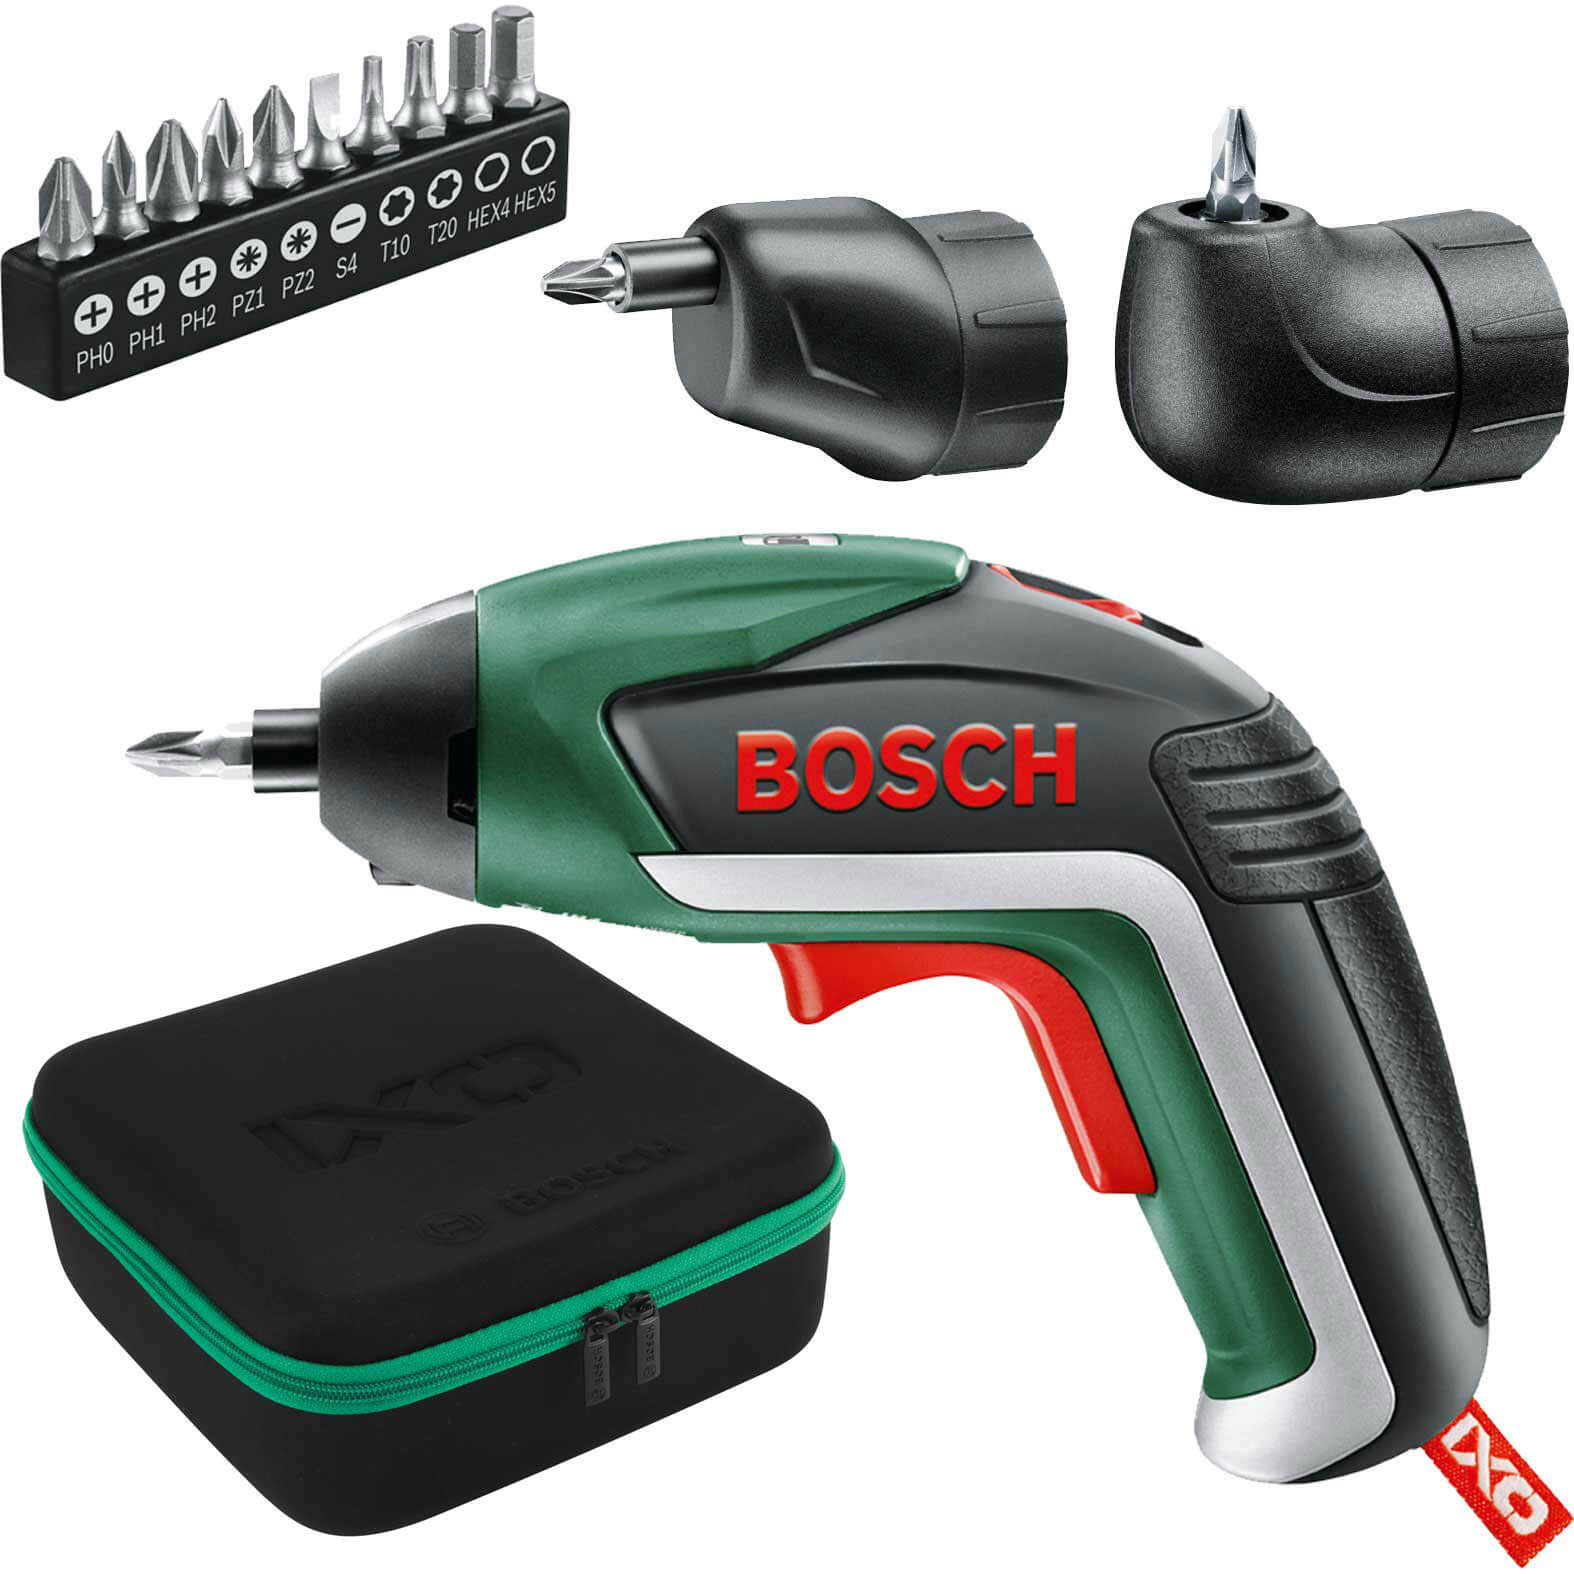 bosch ixo v cordless screwdrive ofset angle adaptor. Black Bedroom Furniture Sets. Home Design Ideas